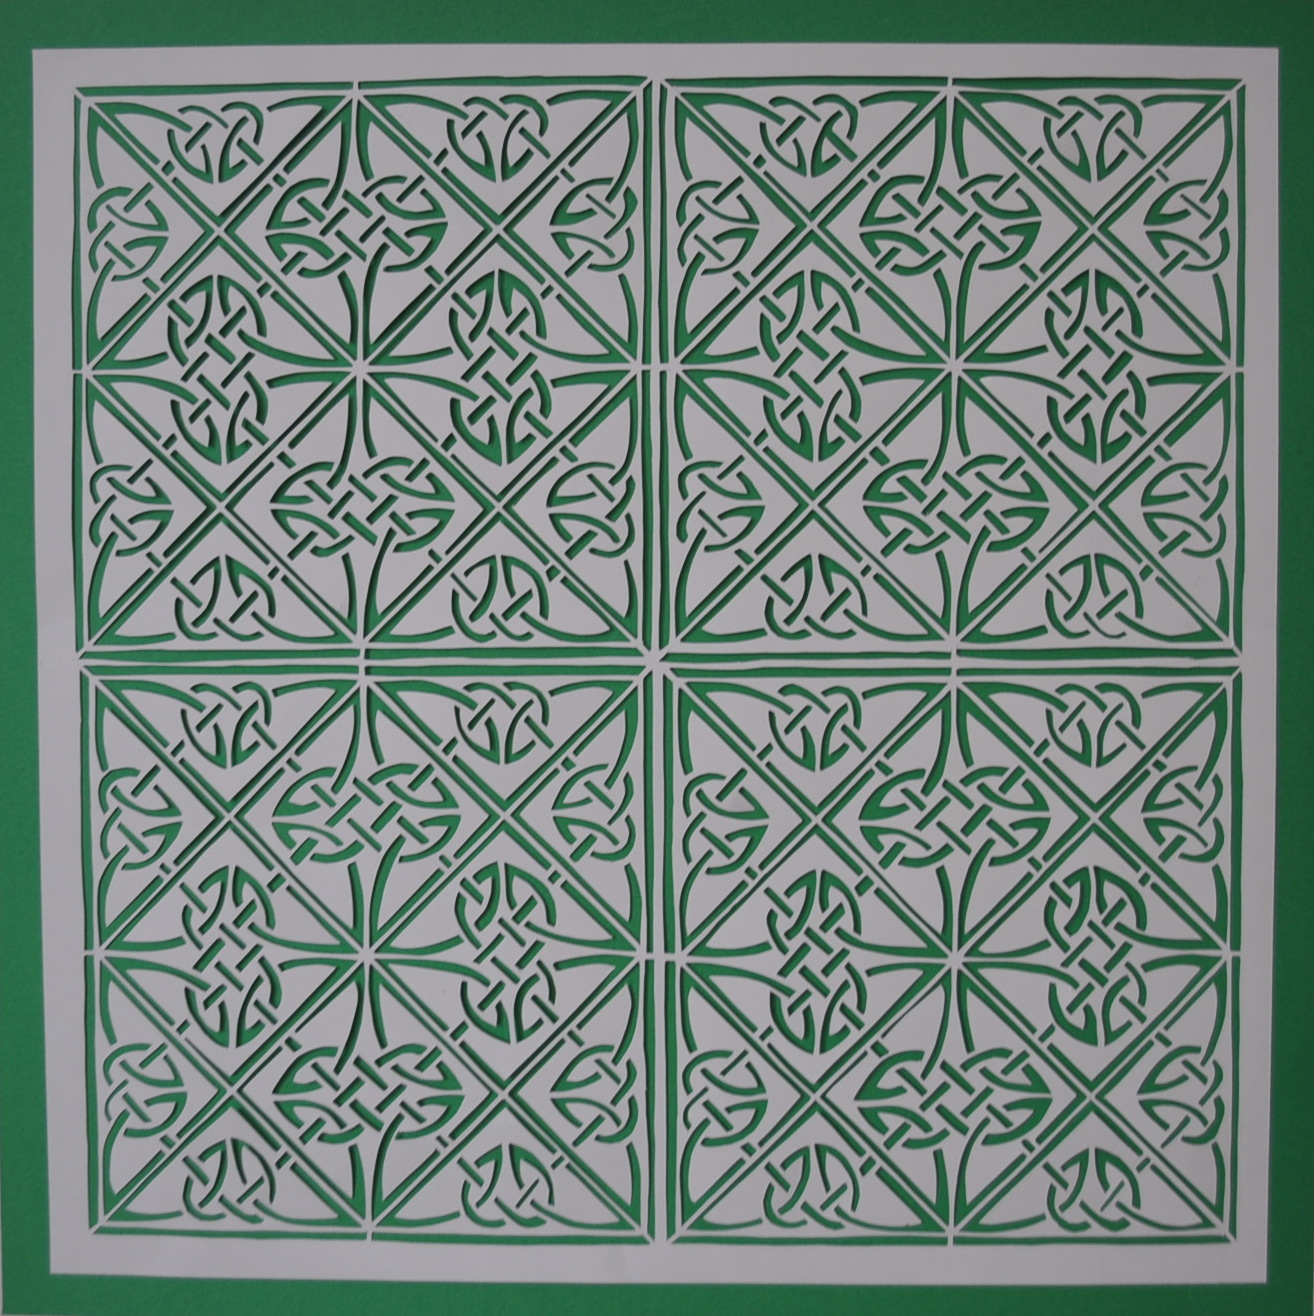 """""""Knotted""""   Measures 15 x 15 inches. White on emerald green background.  SOLD."""